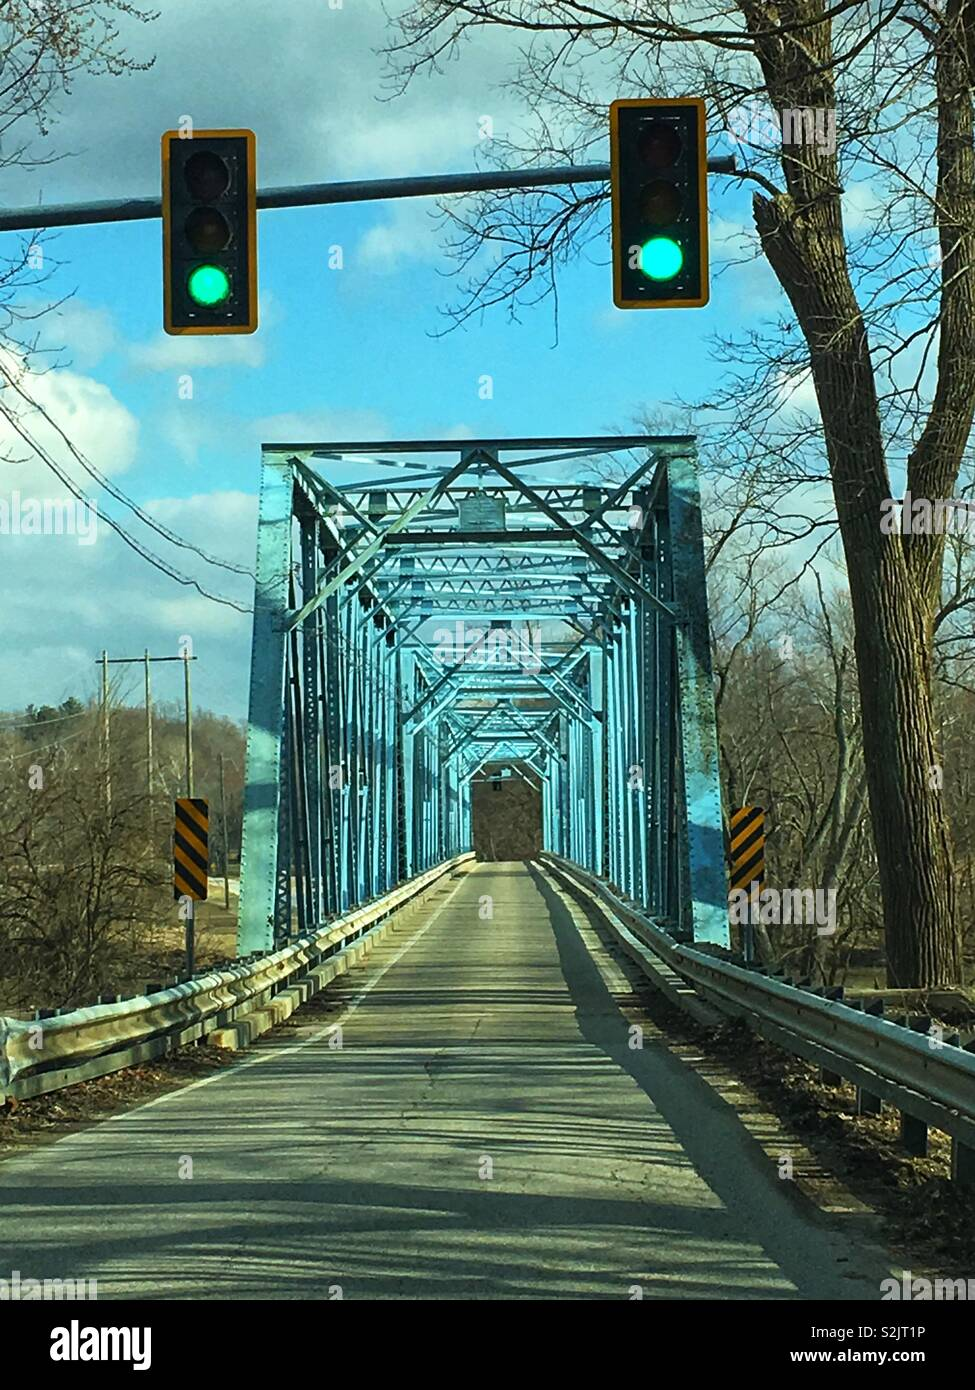 Bridge with one lane and a stoplight that allows only one way traffic to cross the river. - Stock Image